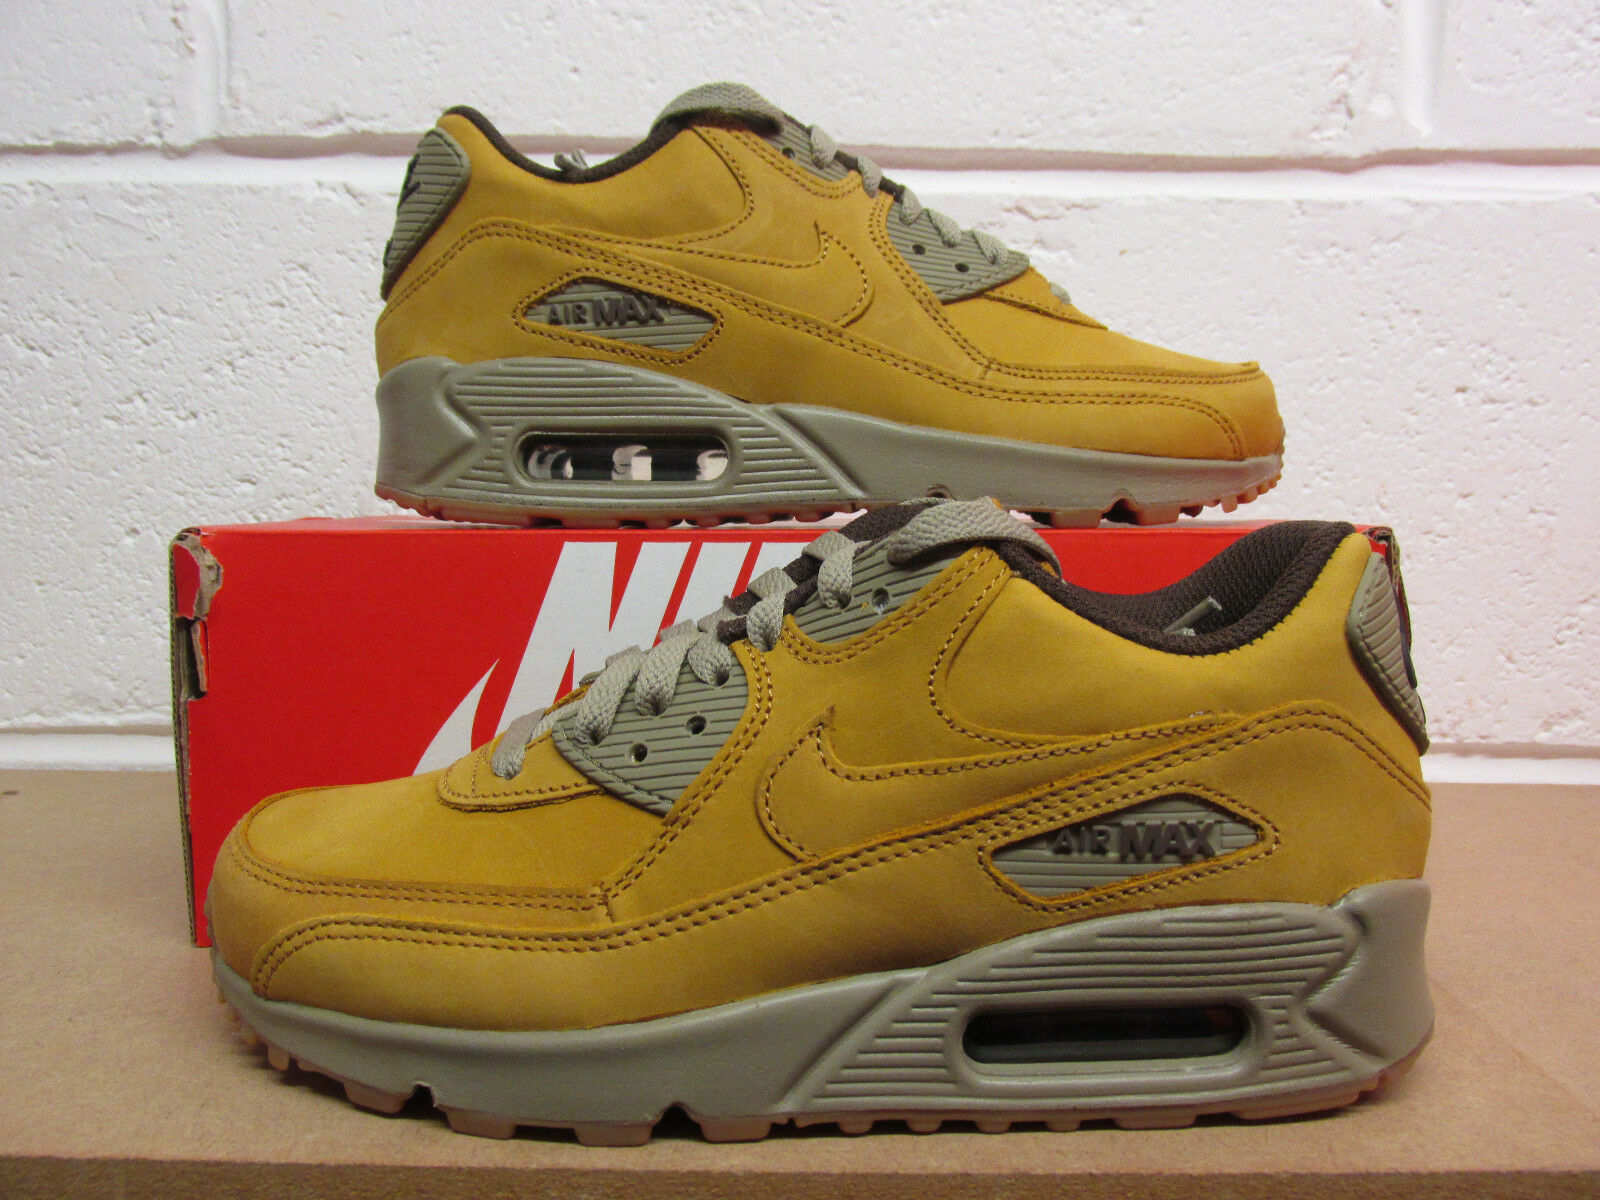 Nike Air Air Air Max 90 Winter Womens trainers 880302 700 shoes sneakers CLEARANCE ff6b56